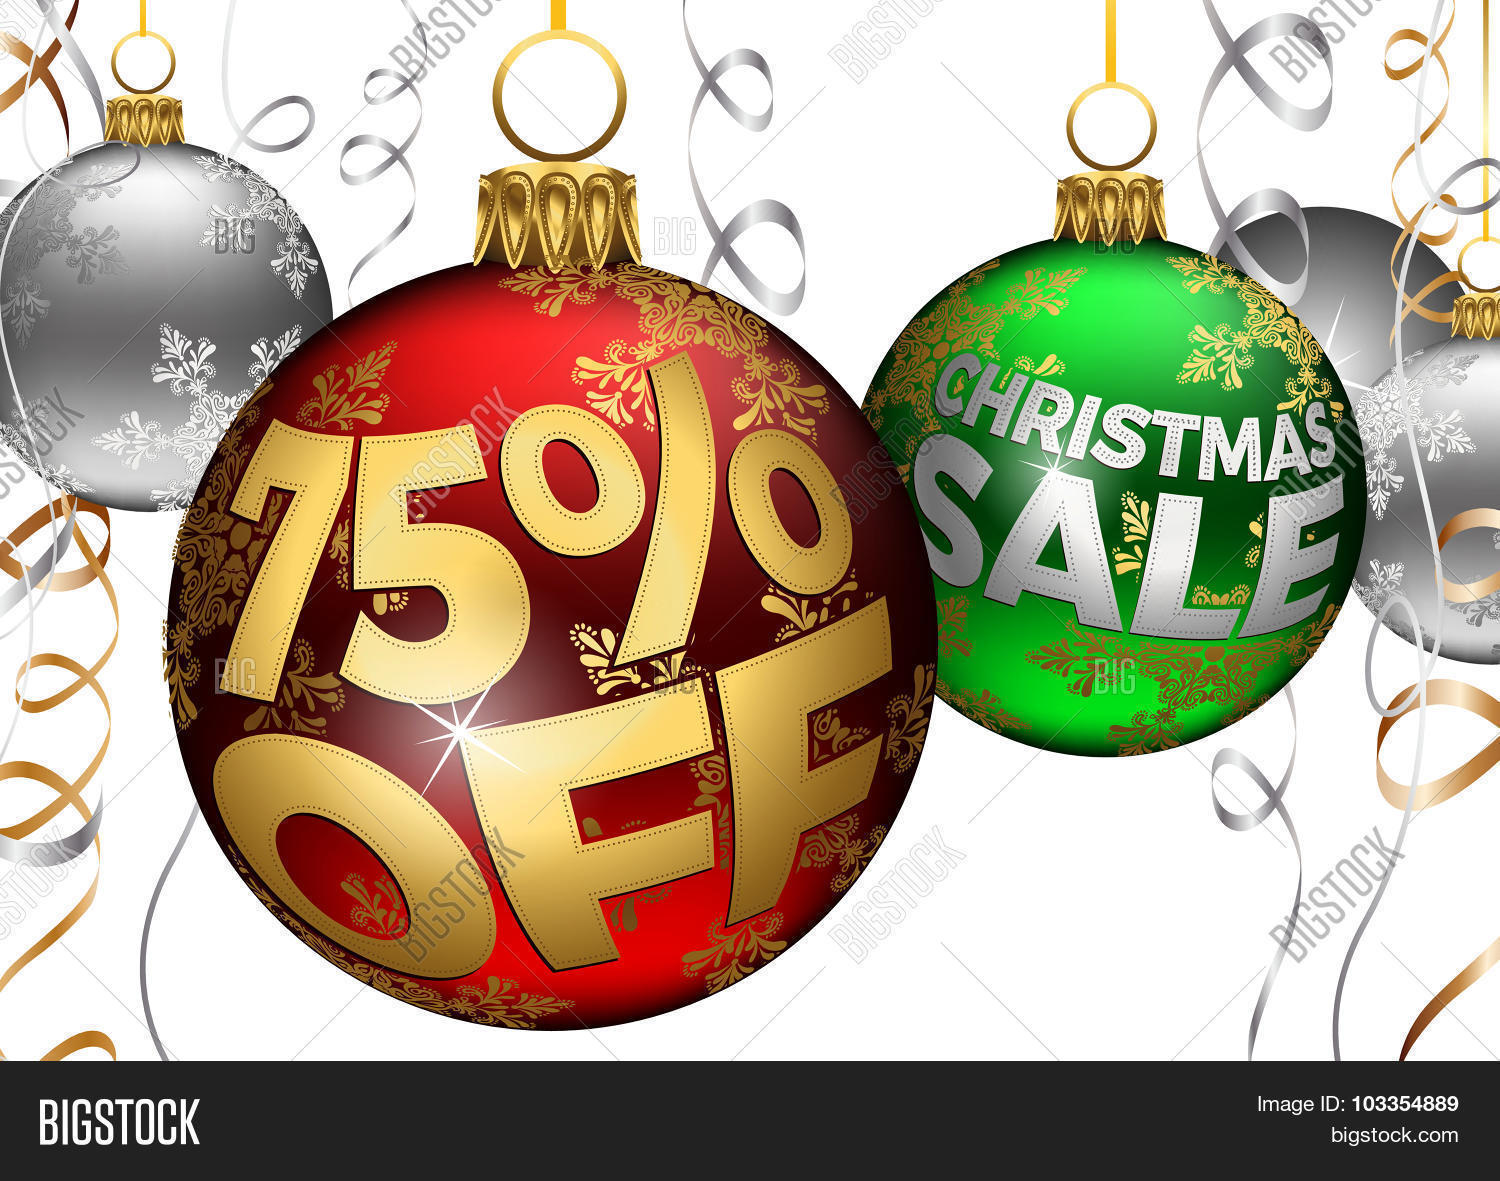 75 off baubles and ribbons christmas sale balls - 75 Off Christmas Decorations